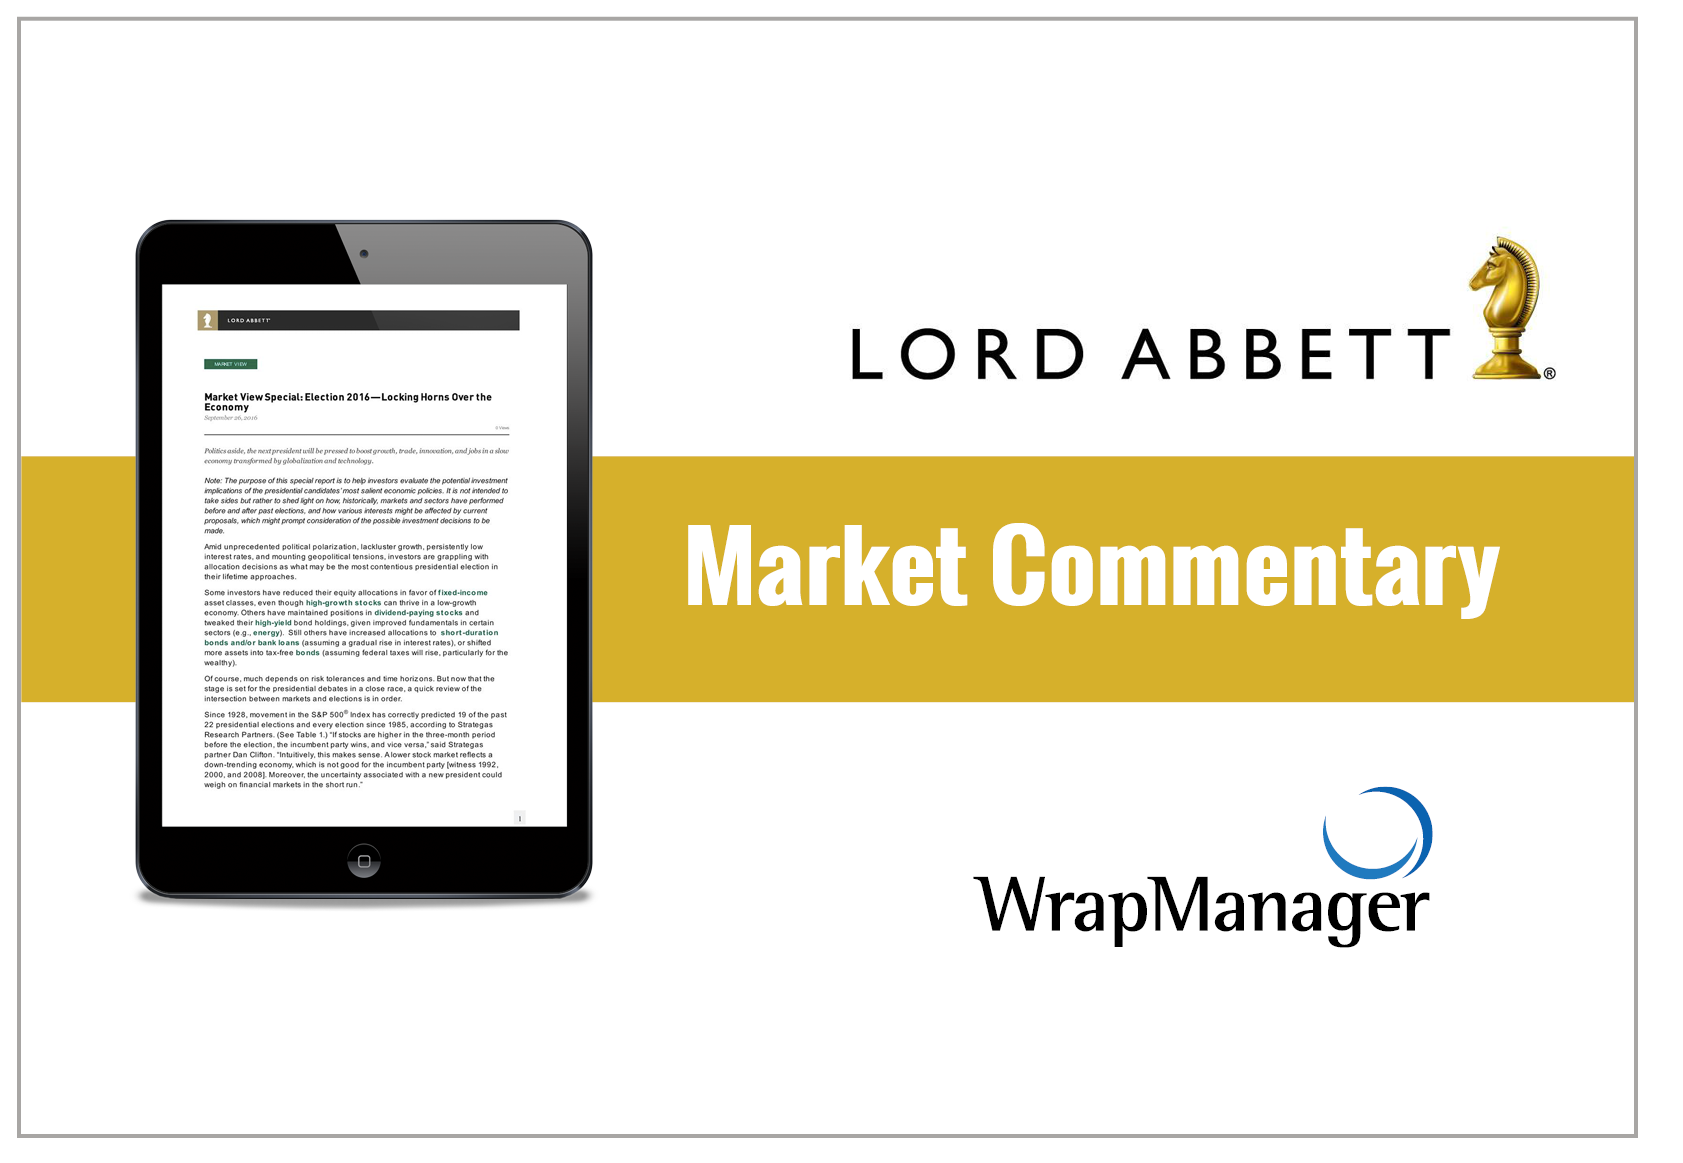 Lord Abbett Shares More Tips on Trusts for IRA and 401(k) Holders - Part 2 of 2